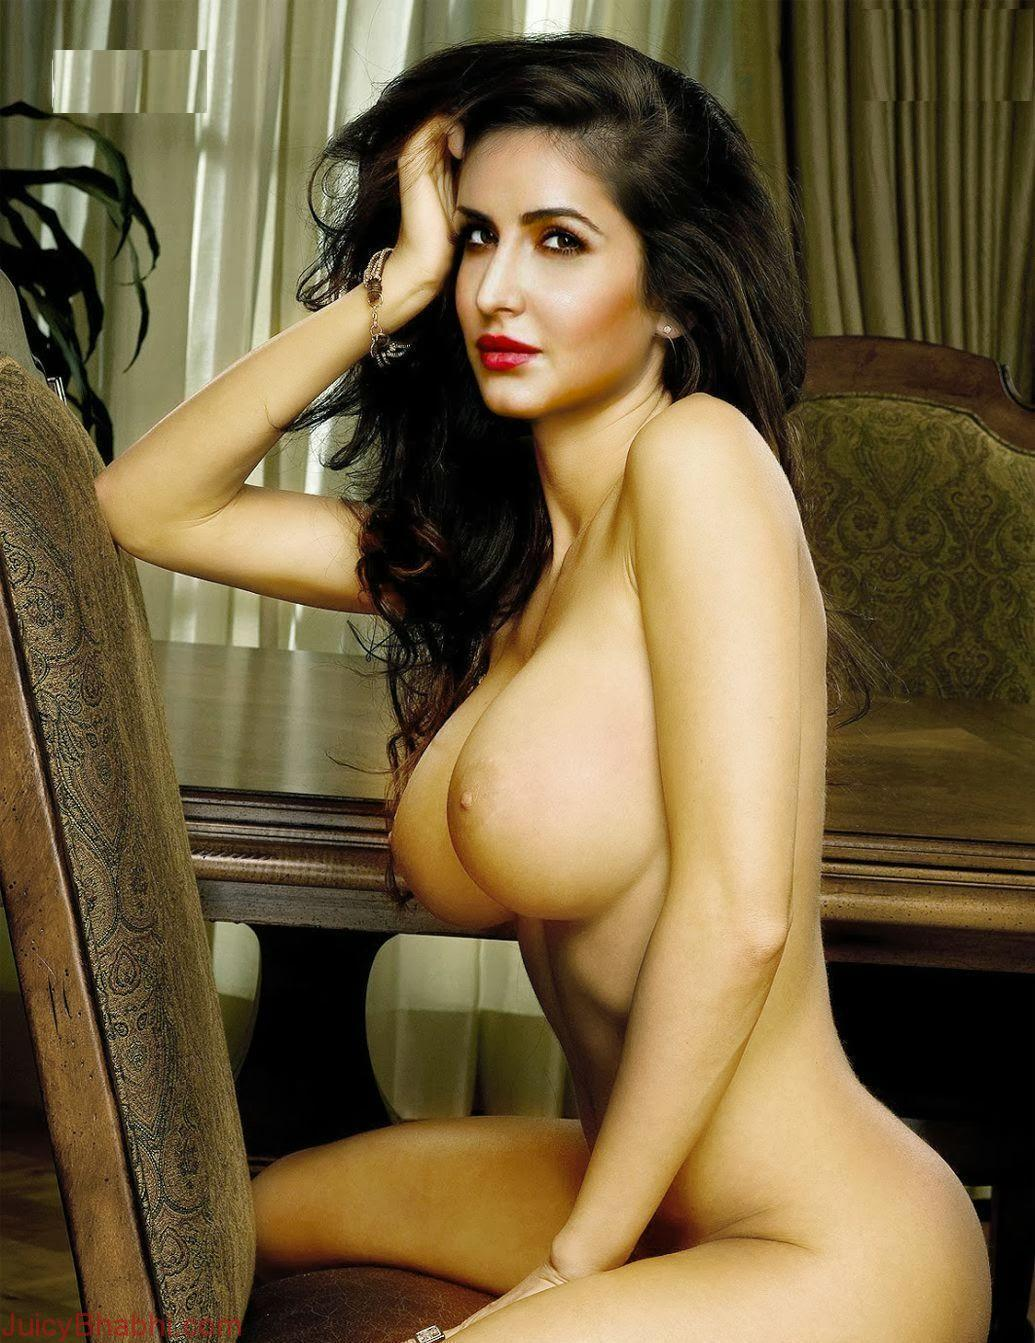 katrina kaif and salman khan sex wallpaper free videos watch ...